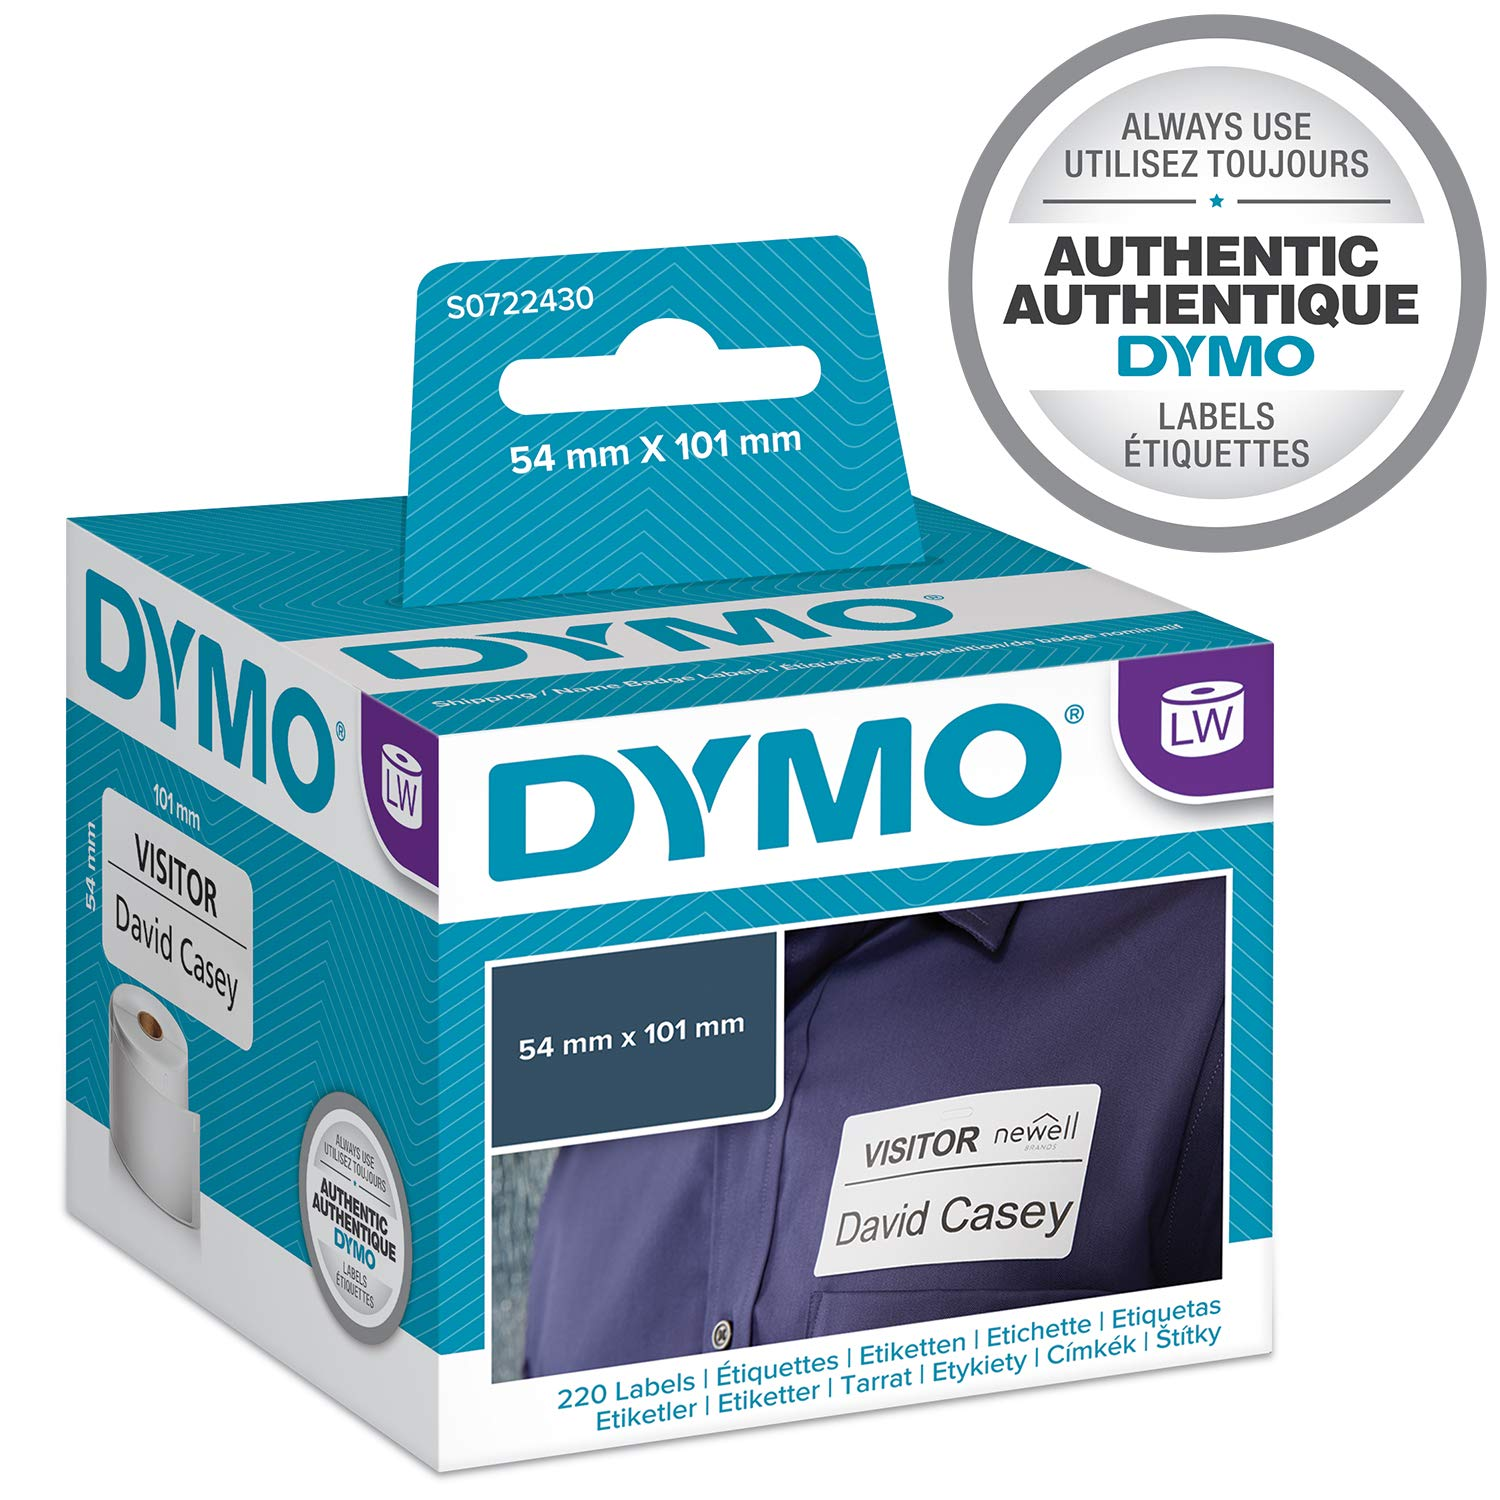 Dymo 54 mm x 101 mm lw large shipping labels name badges roll of 220 easy peel labels self adhesive for labelwriter label makers